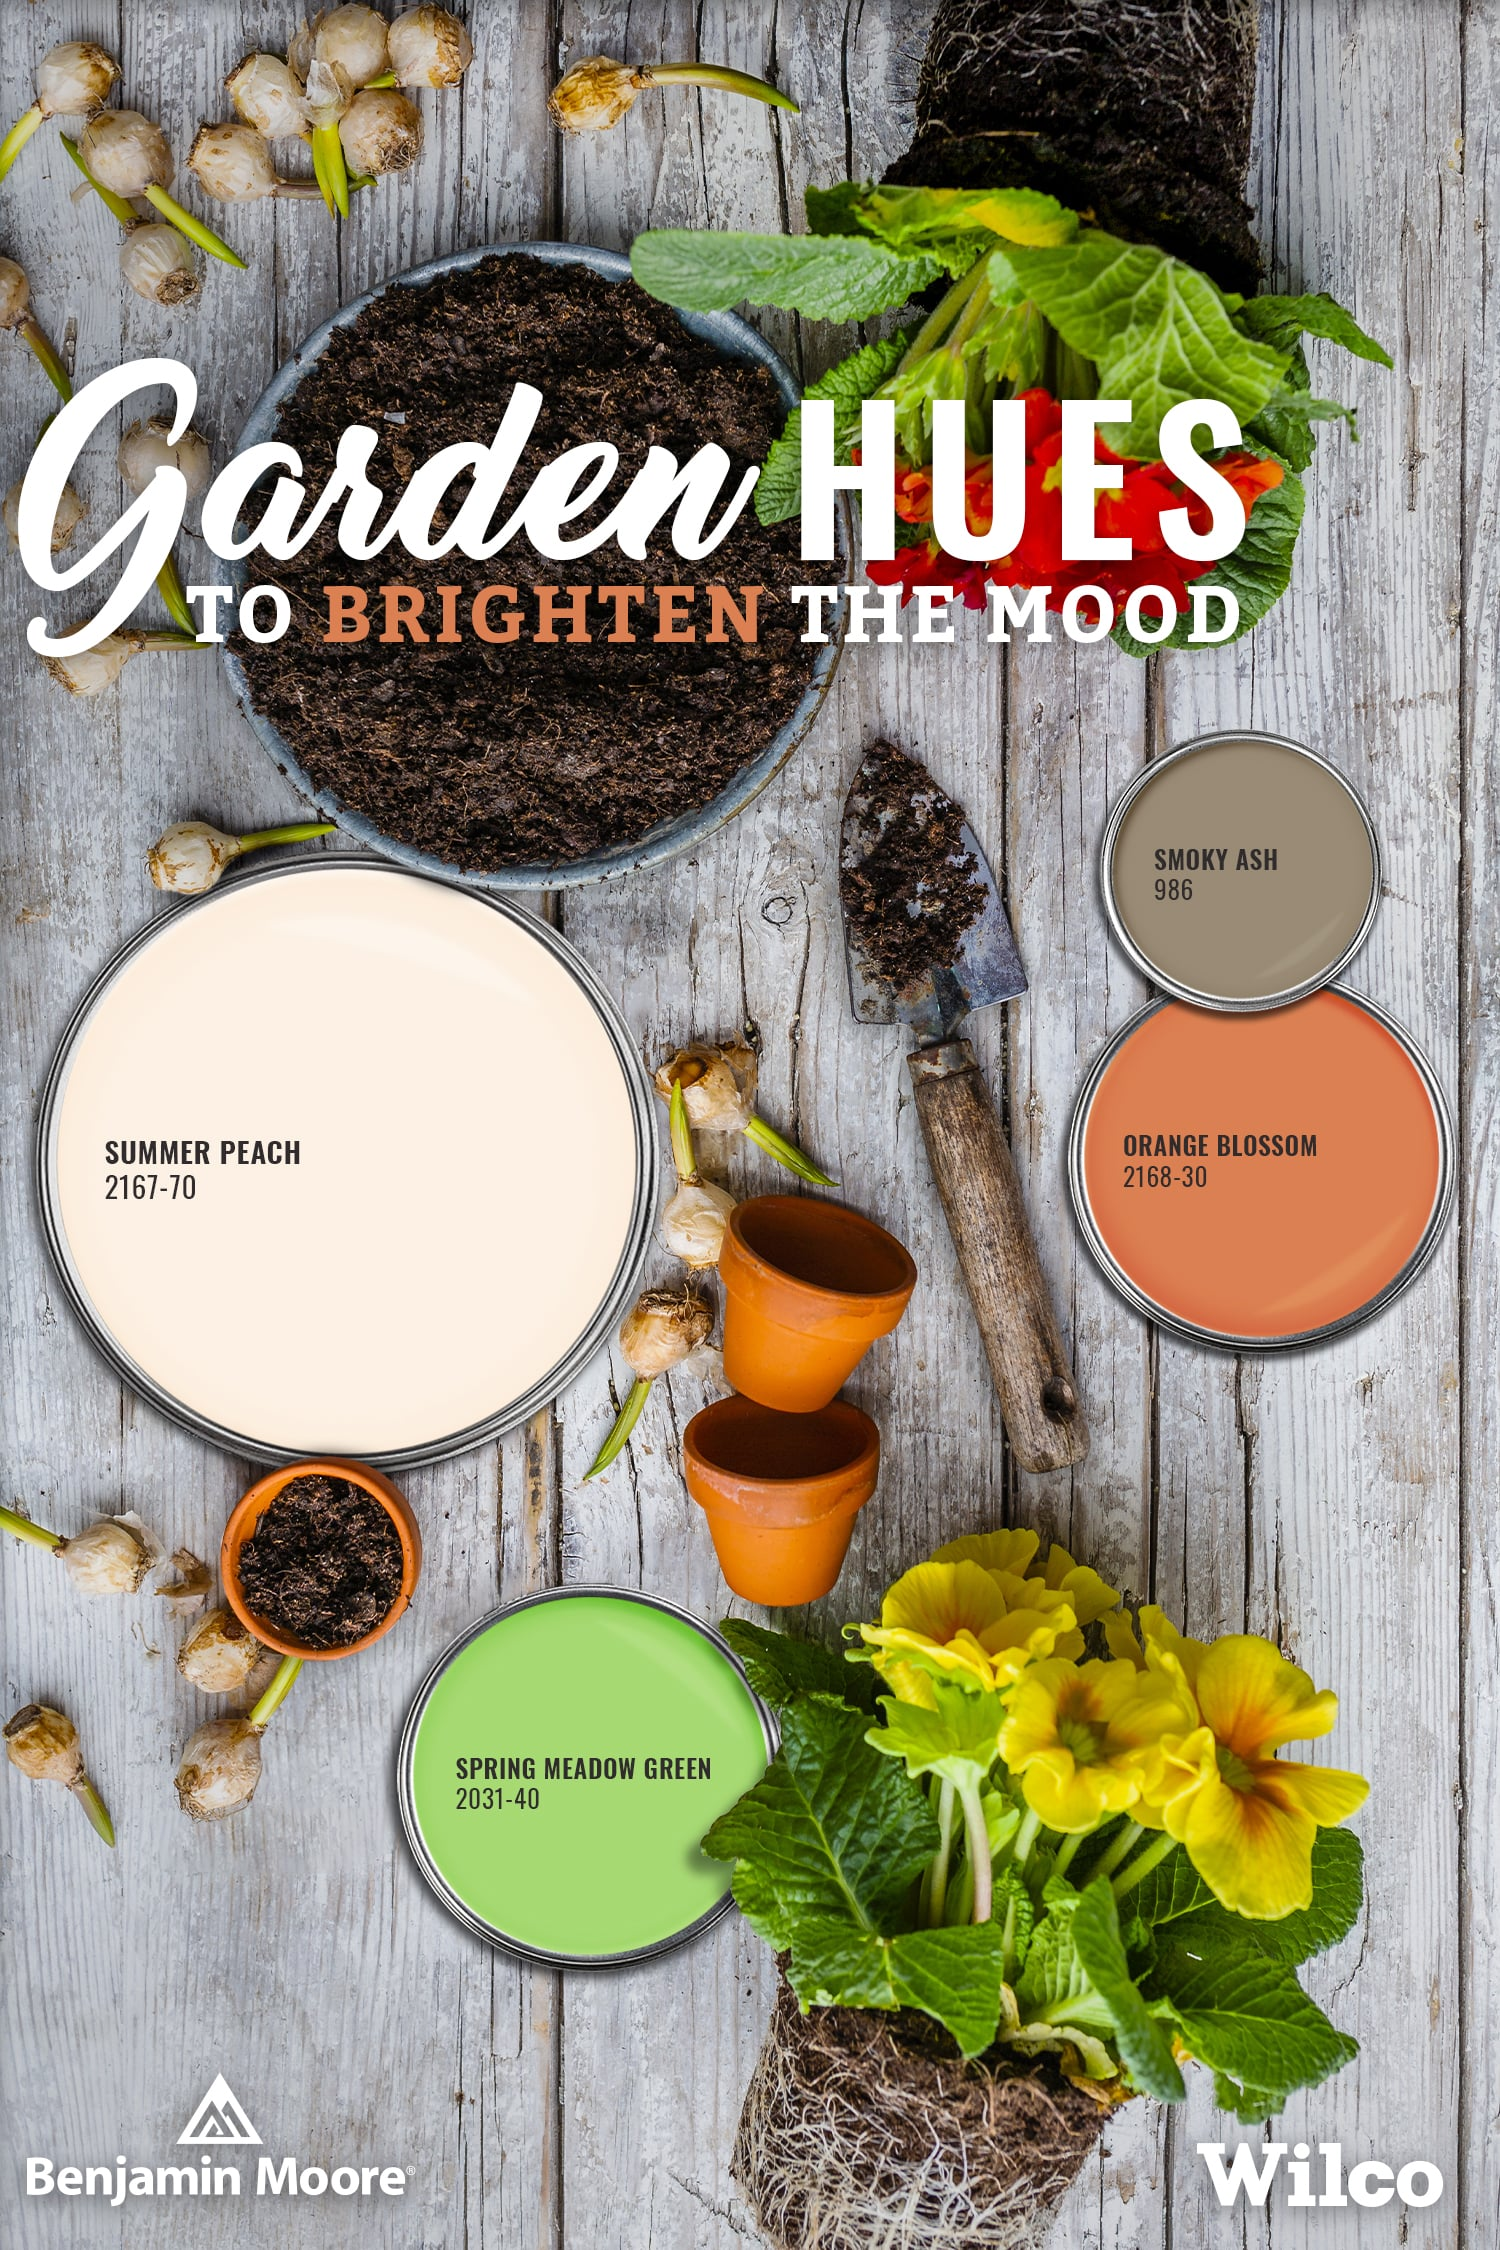 Garden Hues to Brighten the Mood with Benjamin Moore Paint Palette Blog